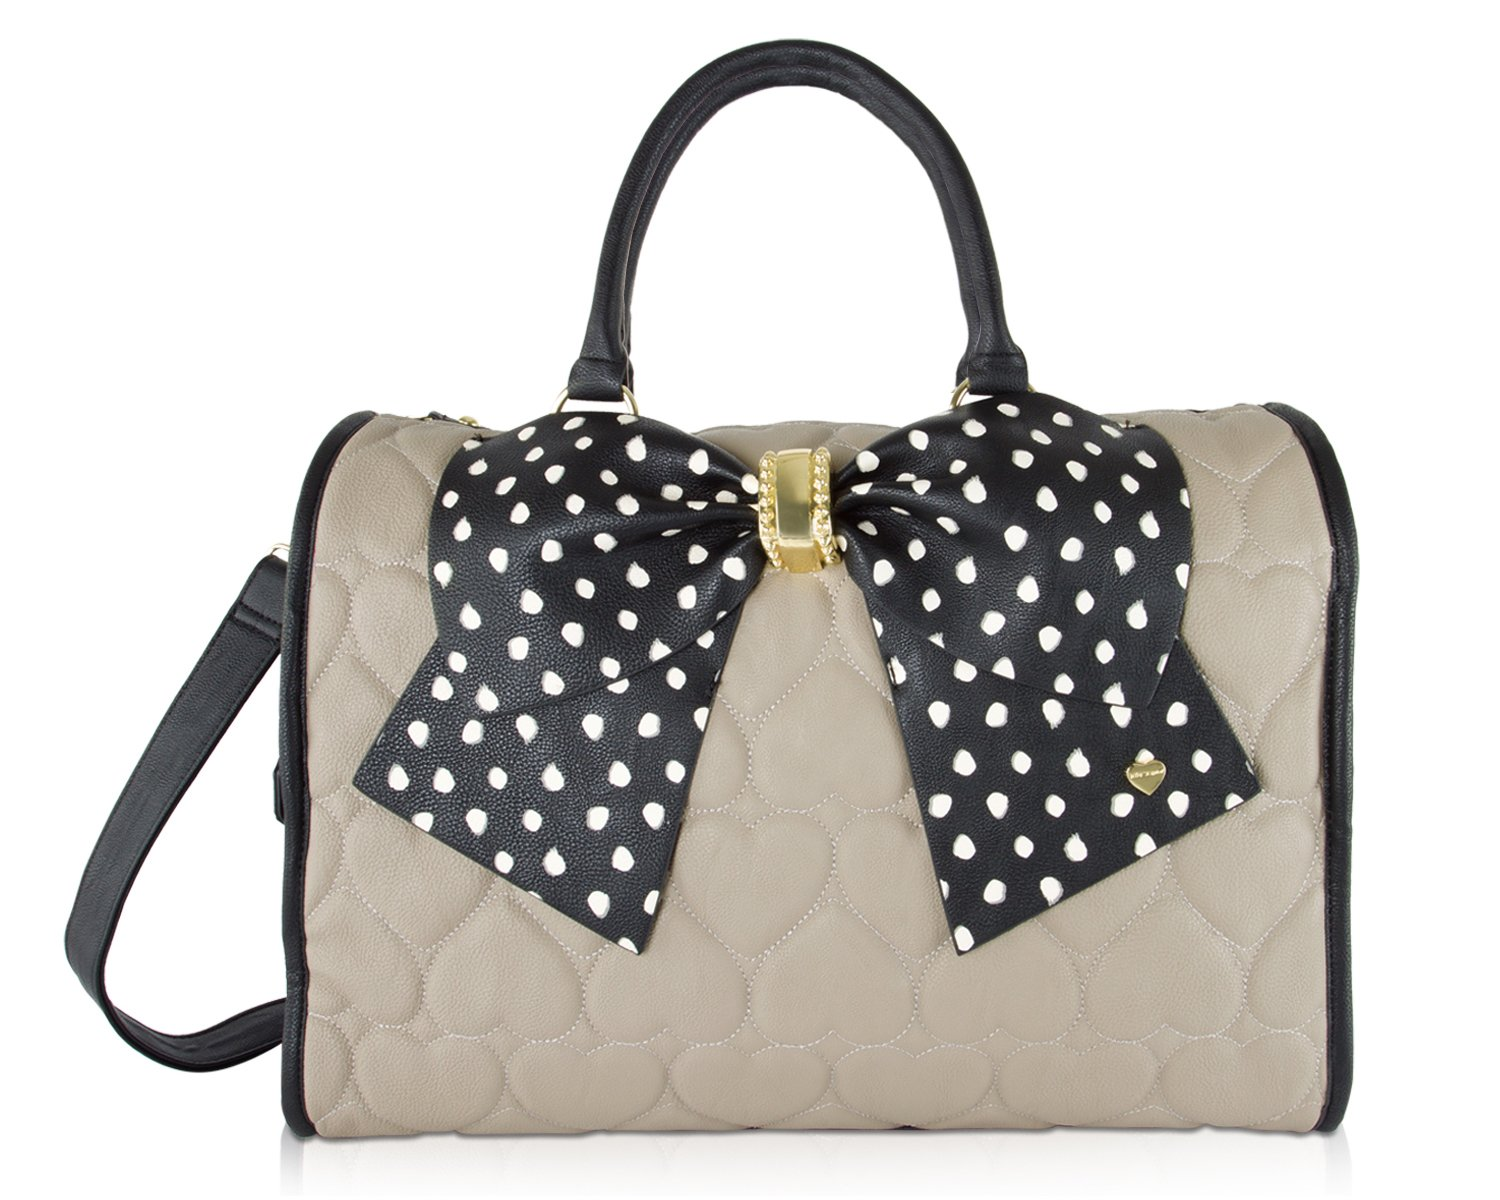 Betsey Johnson Heart Quilted Bow Carry On Weekender Travel Duffel Bag -Taupe Black